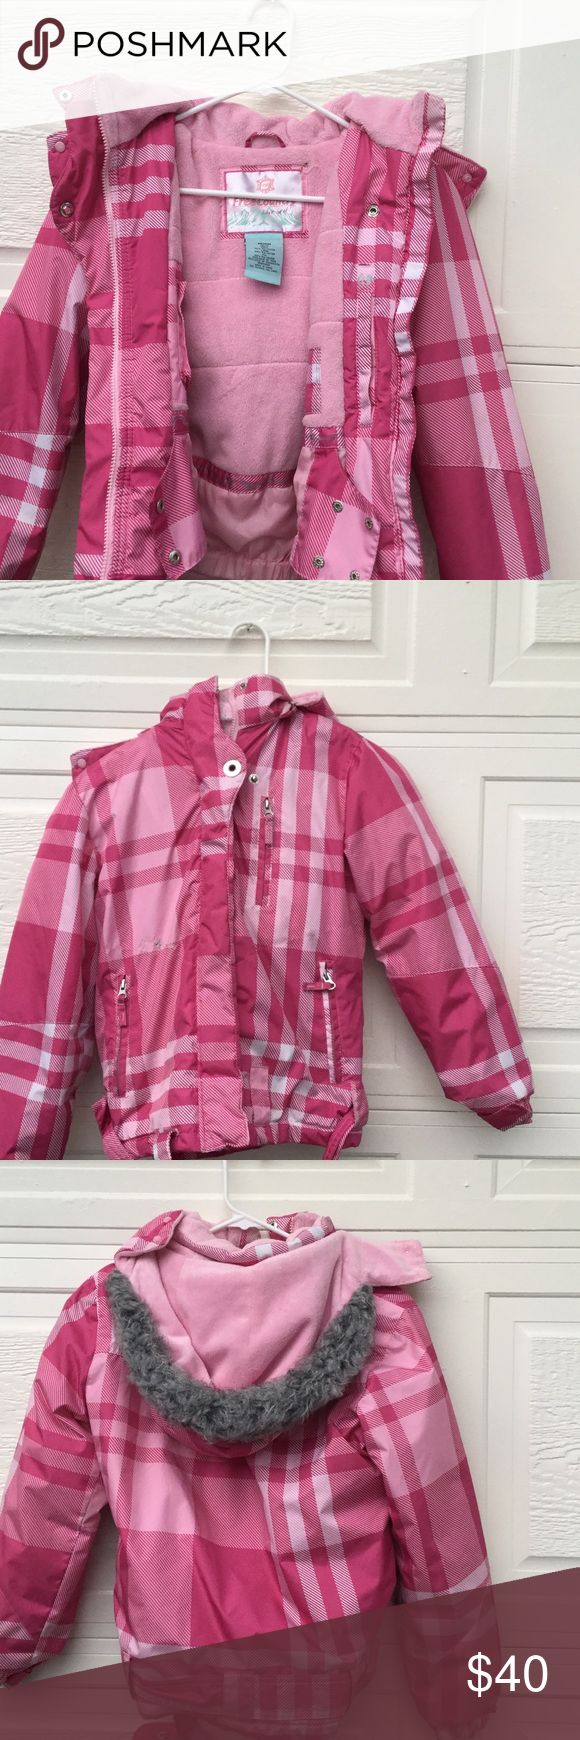 Pink Girl Snow Jacket Pink Plaid snow jacket with fuzzy interior. Very good quality jacket with a removable hood. Fur on hood a little worn down, but still very cute. Belt on jacket to ensure it stays on. Great jacket for any little girl. Free Country Jackets & Coats